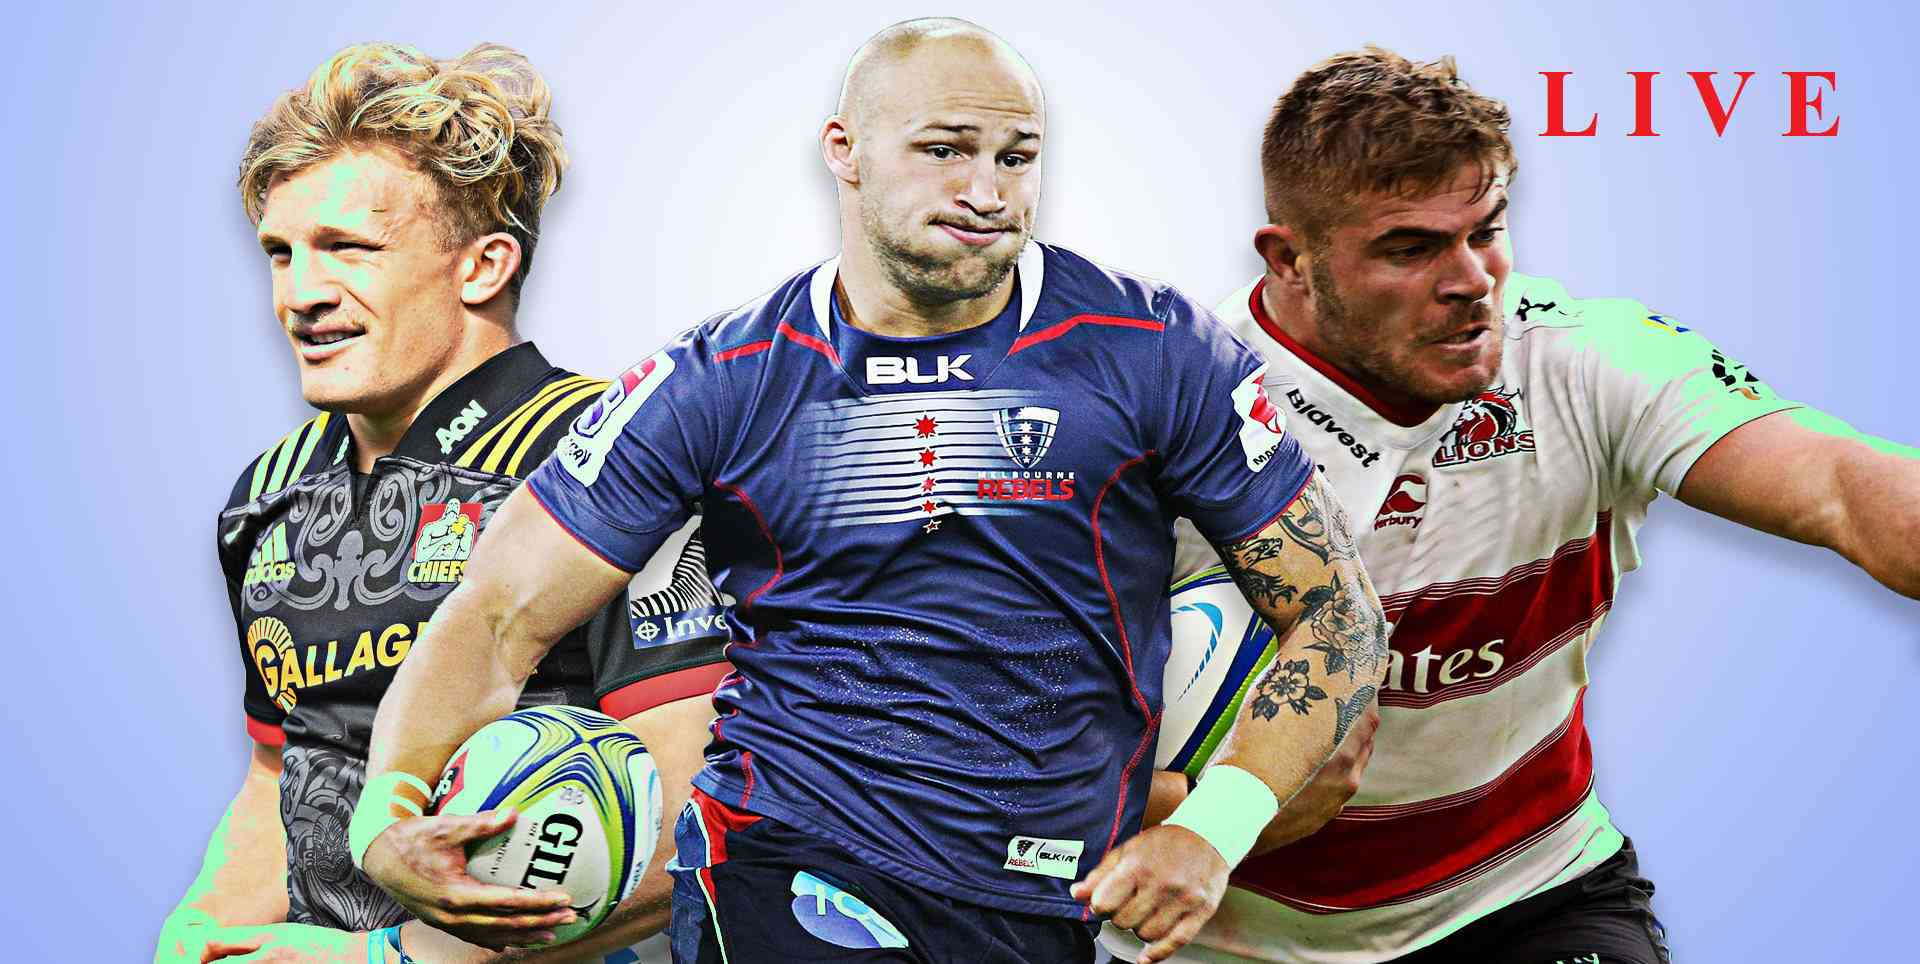 highlanders-vs-crusaders-live-stream